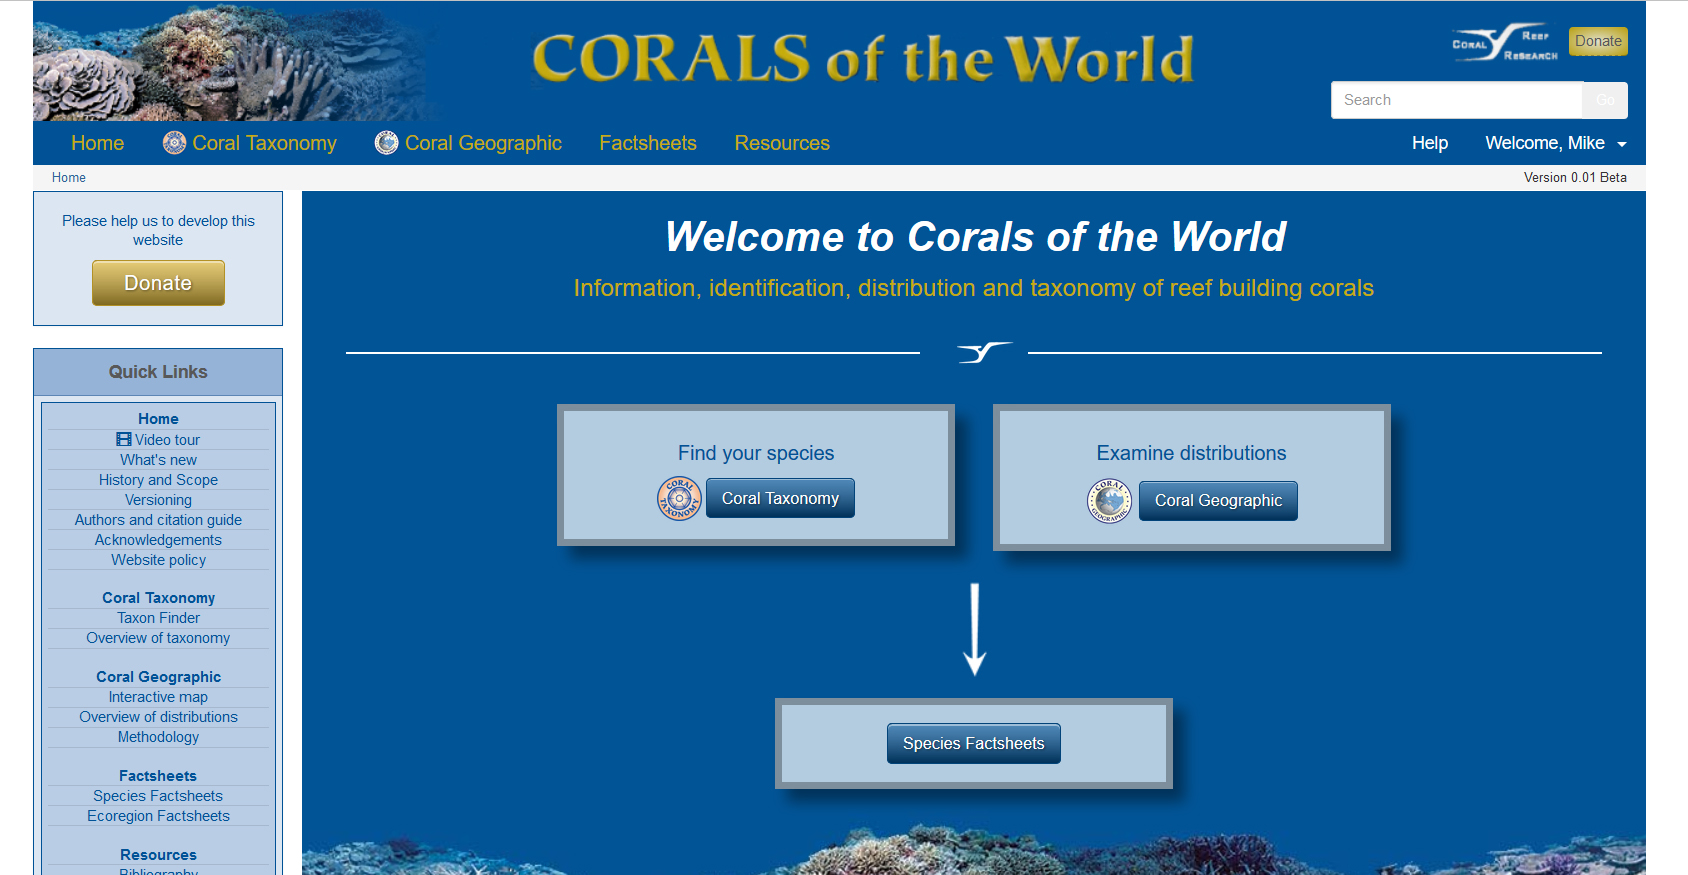 Home page of the newly-launched Corals of the World online database